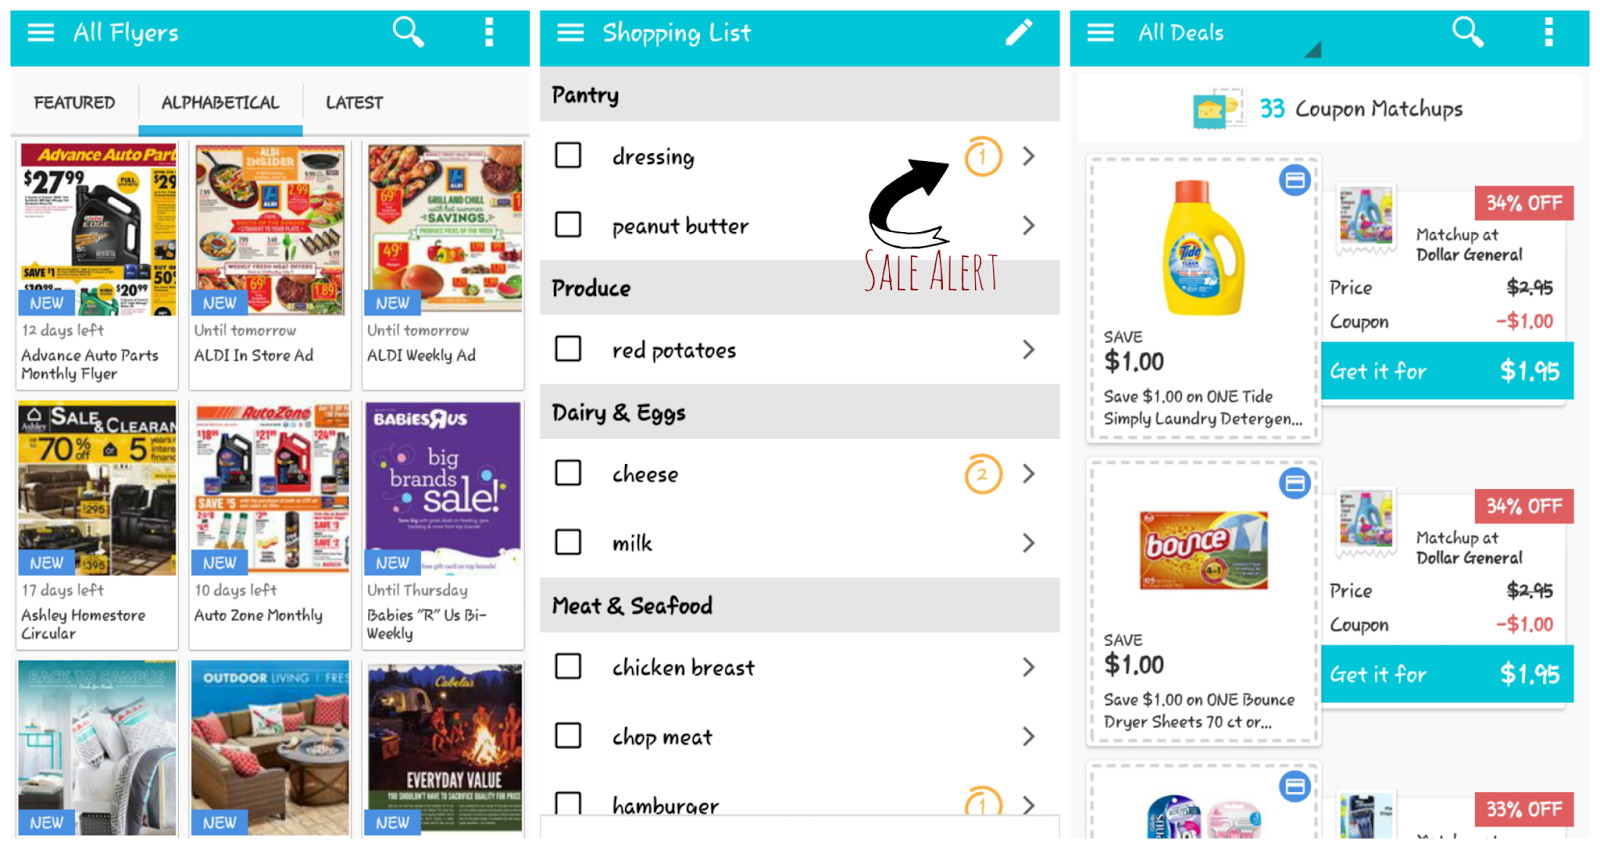 Flipp - Grocery & Shopping List App Coupon Matchup